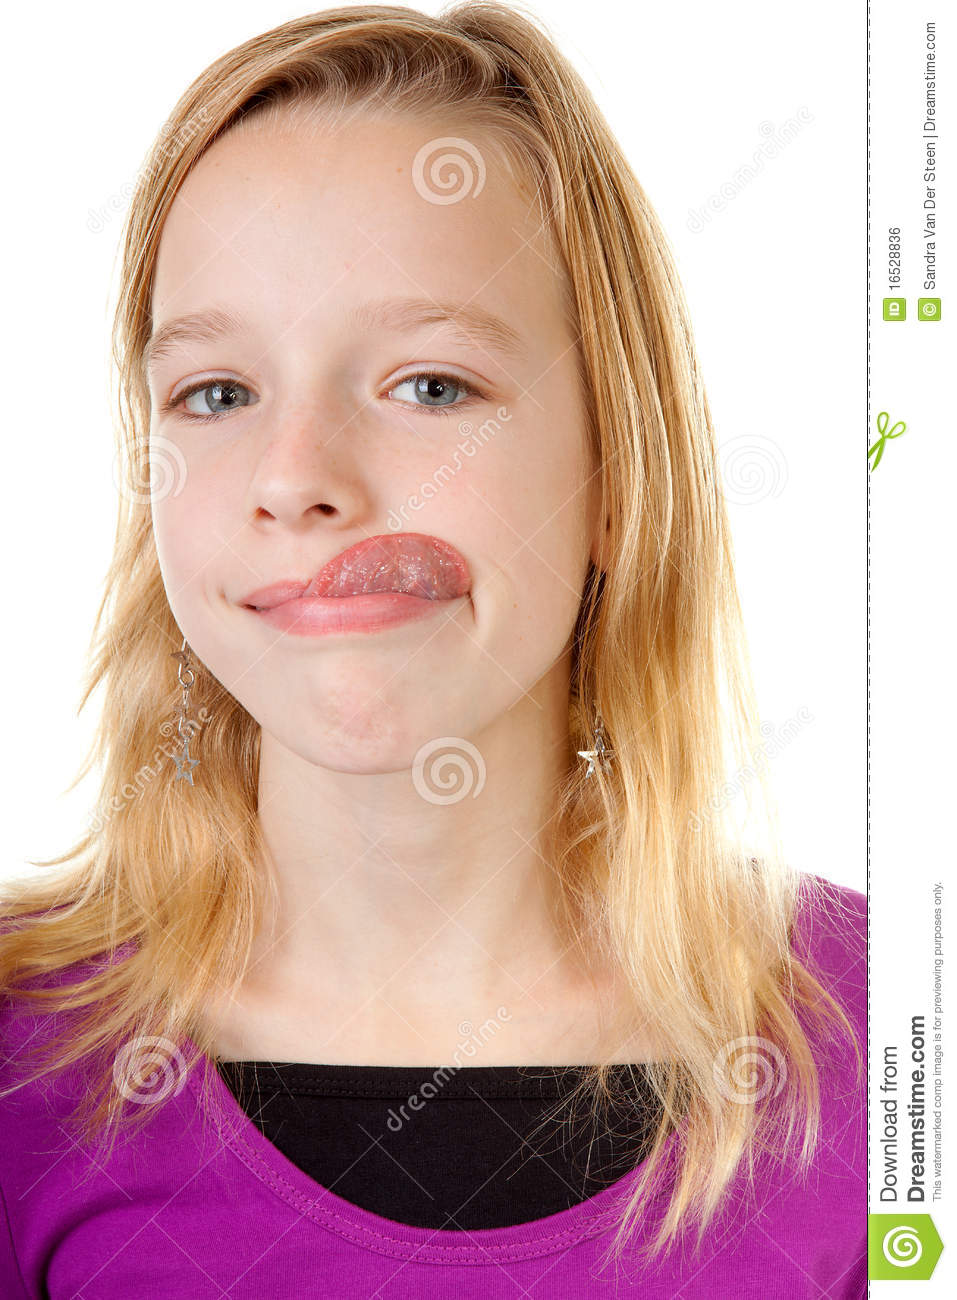 Young Girl Makes Funny Face Royalty Free Stock Image - Image: 16528836